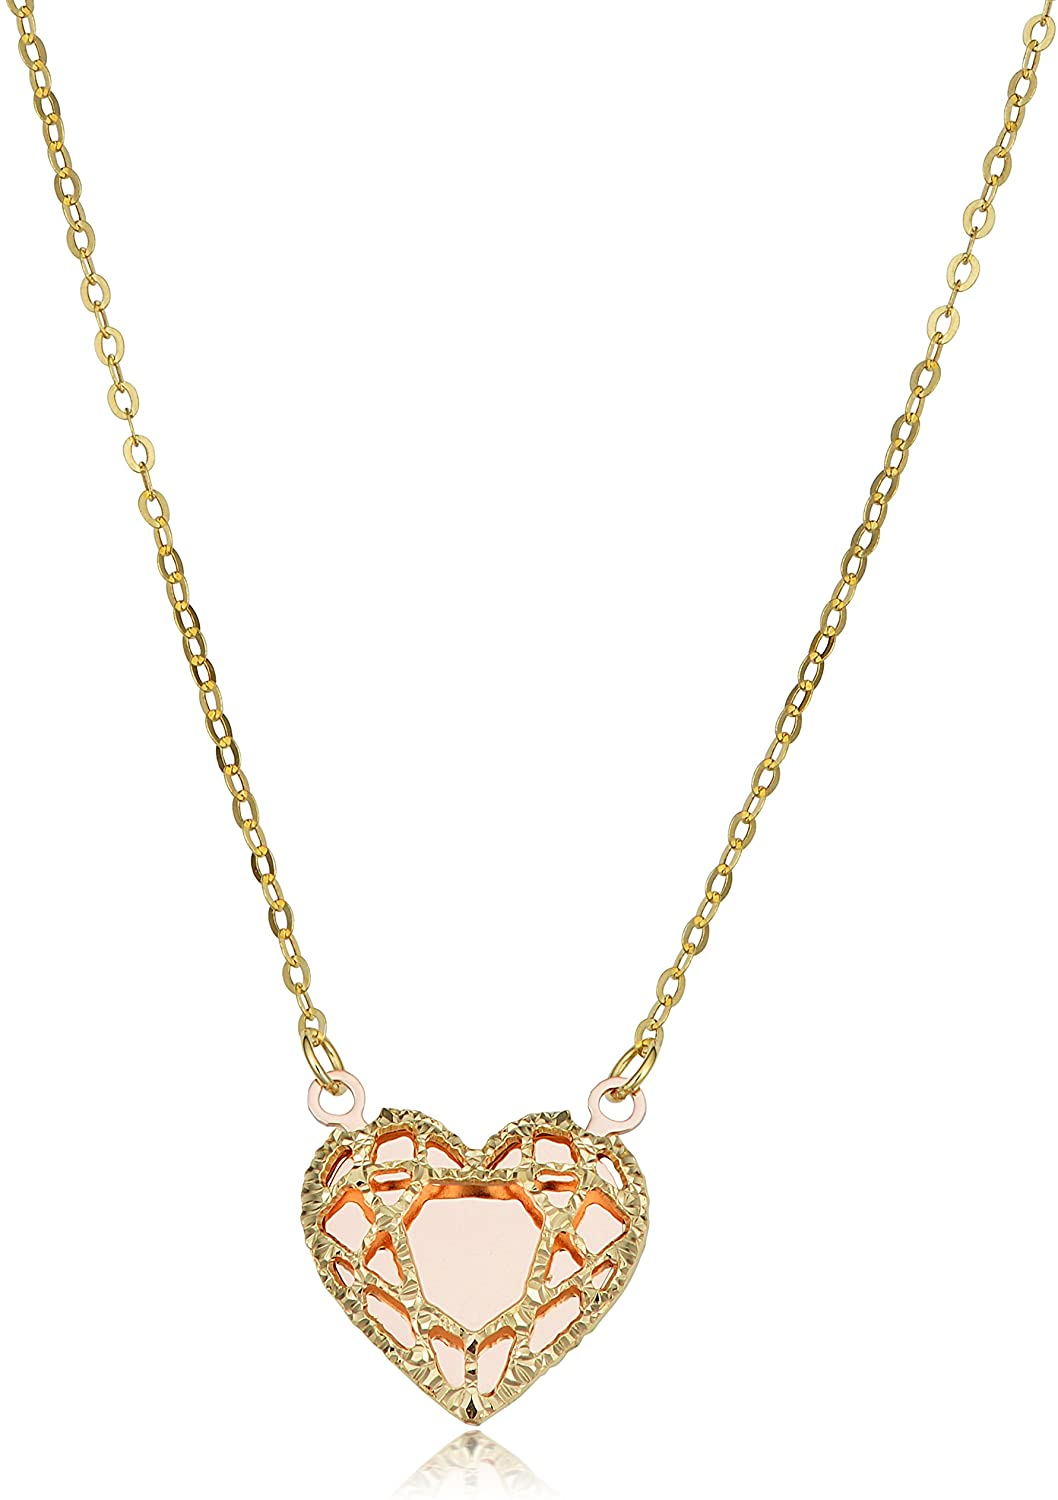 Kooljewelry 14k Yellow Gold and Rose Gold Heart Necklace (adjusts to 16 or 17 inch)